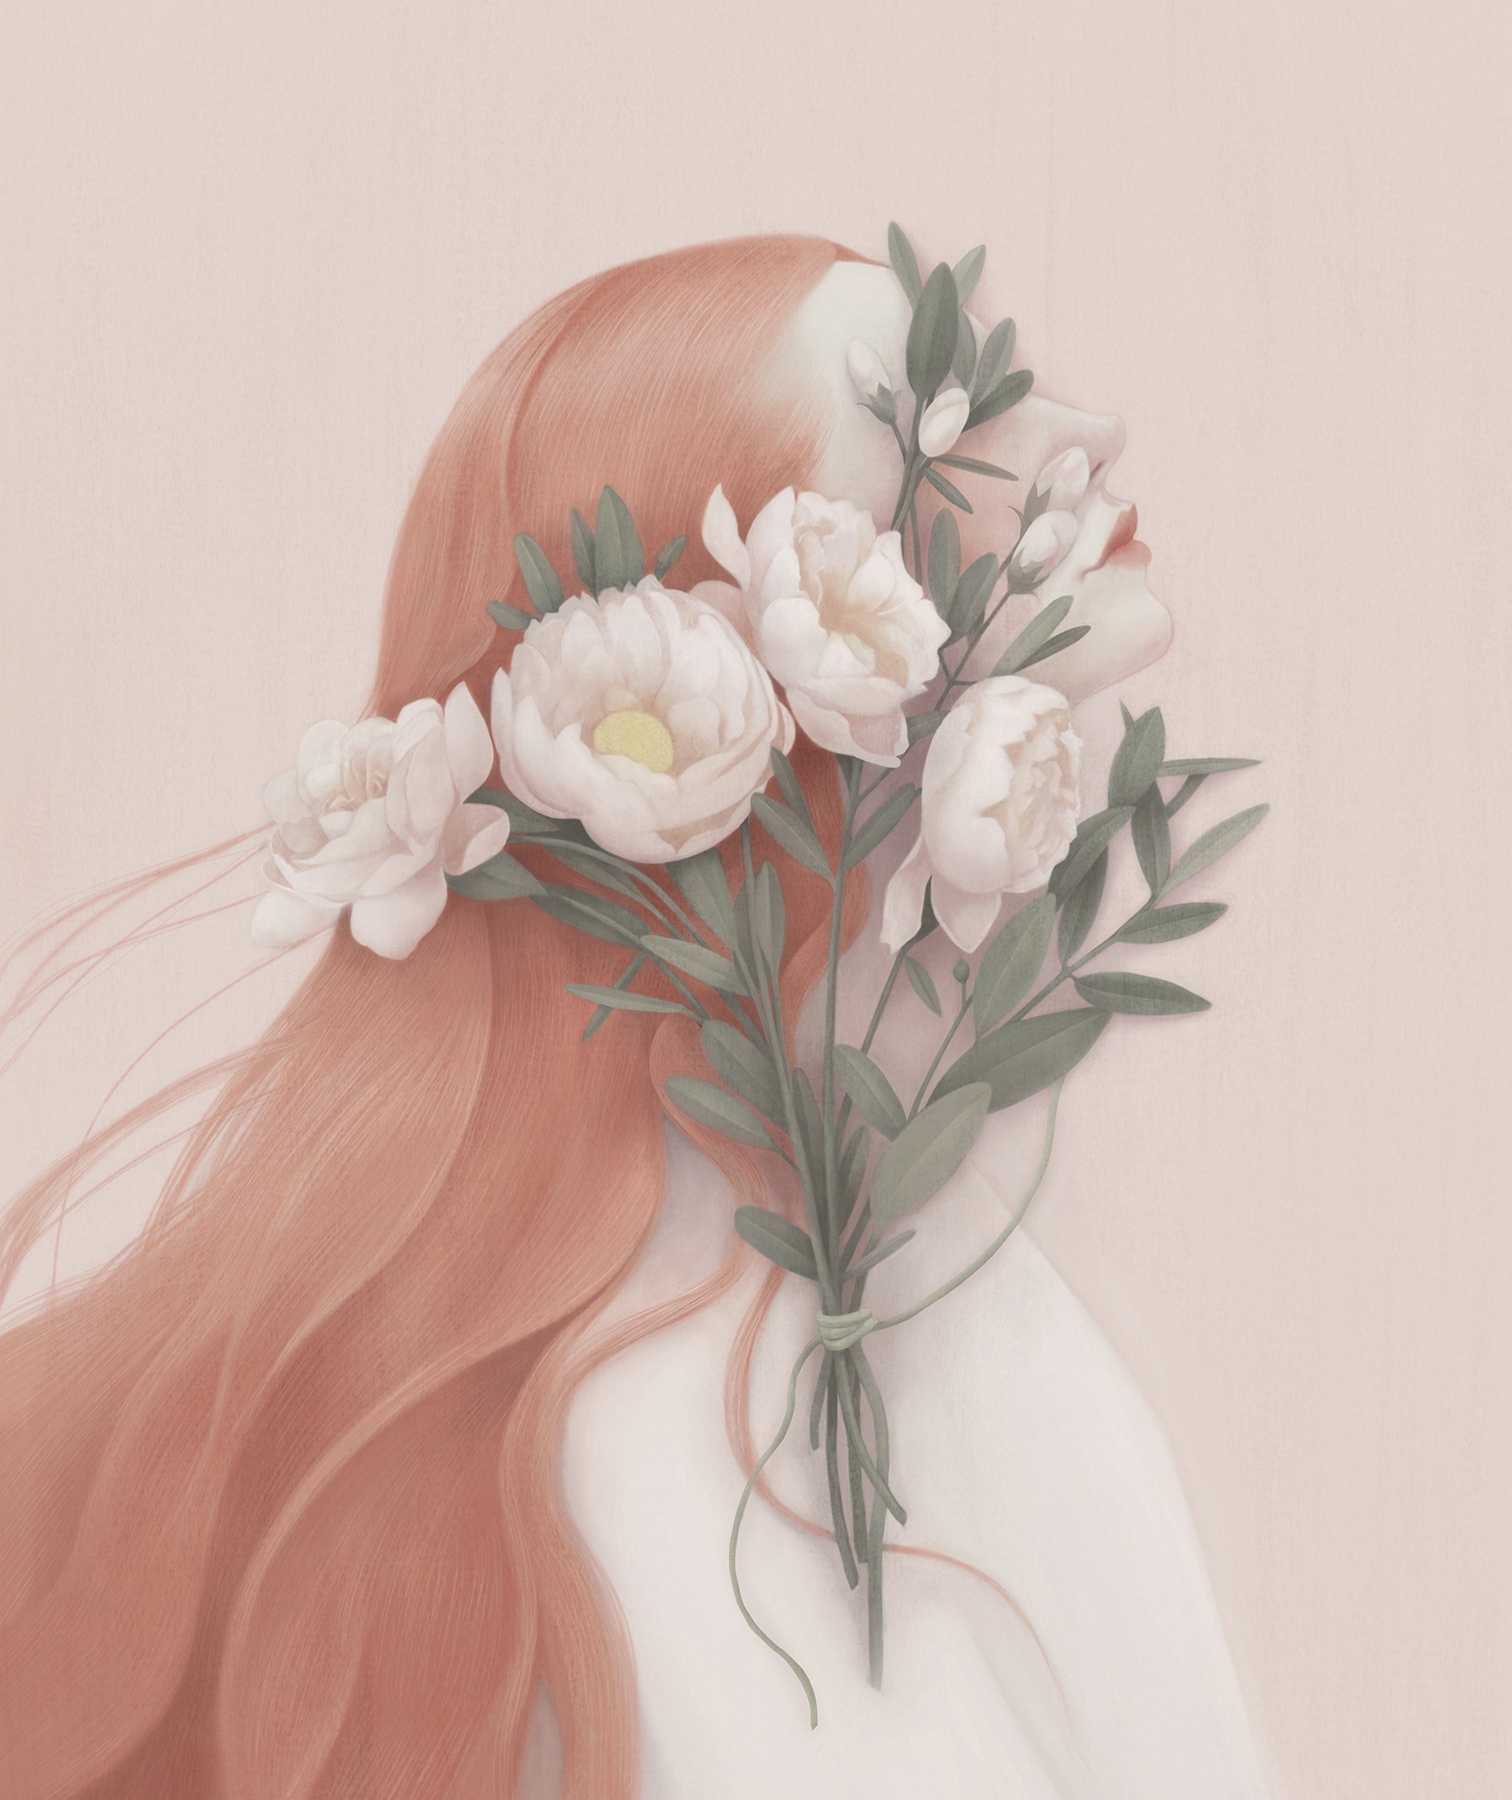 Illustration: woman with flowers in her face